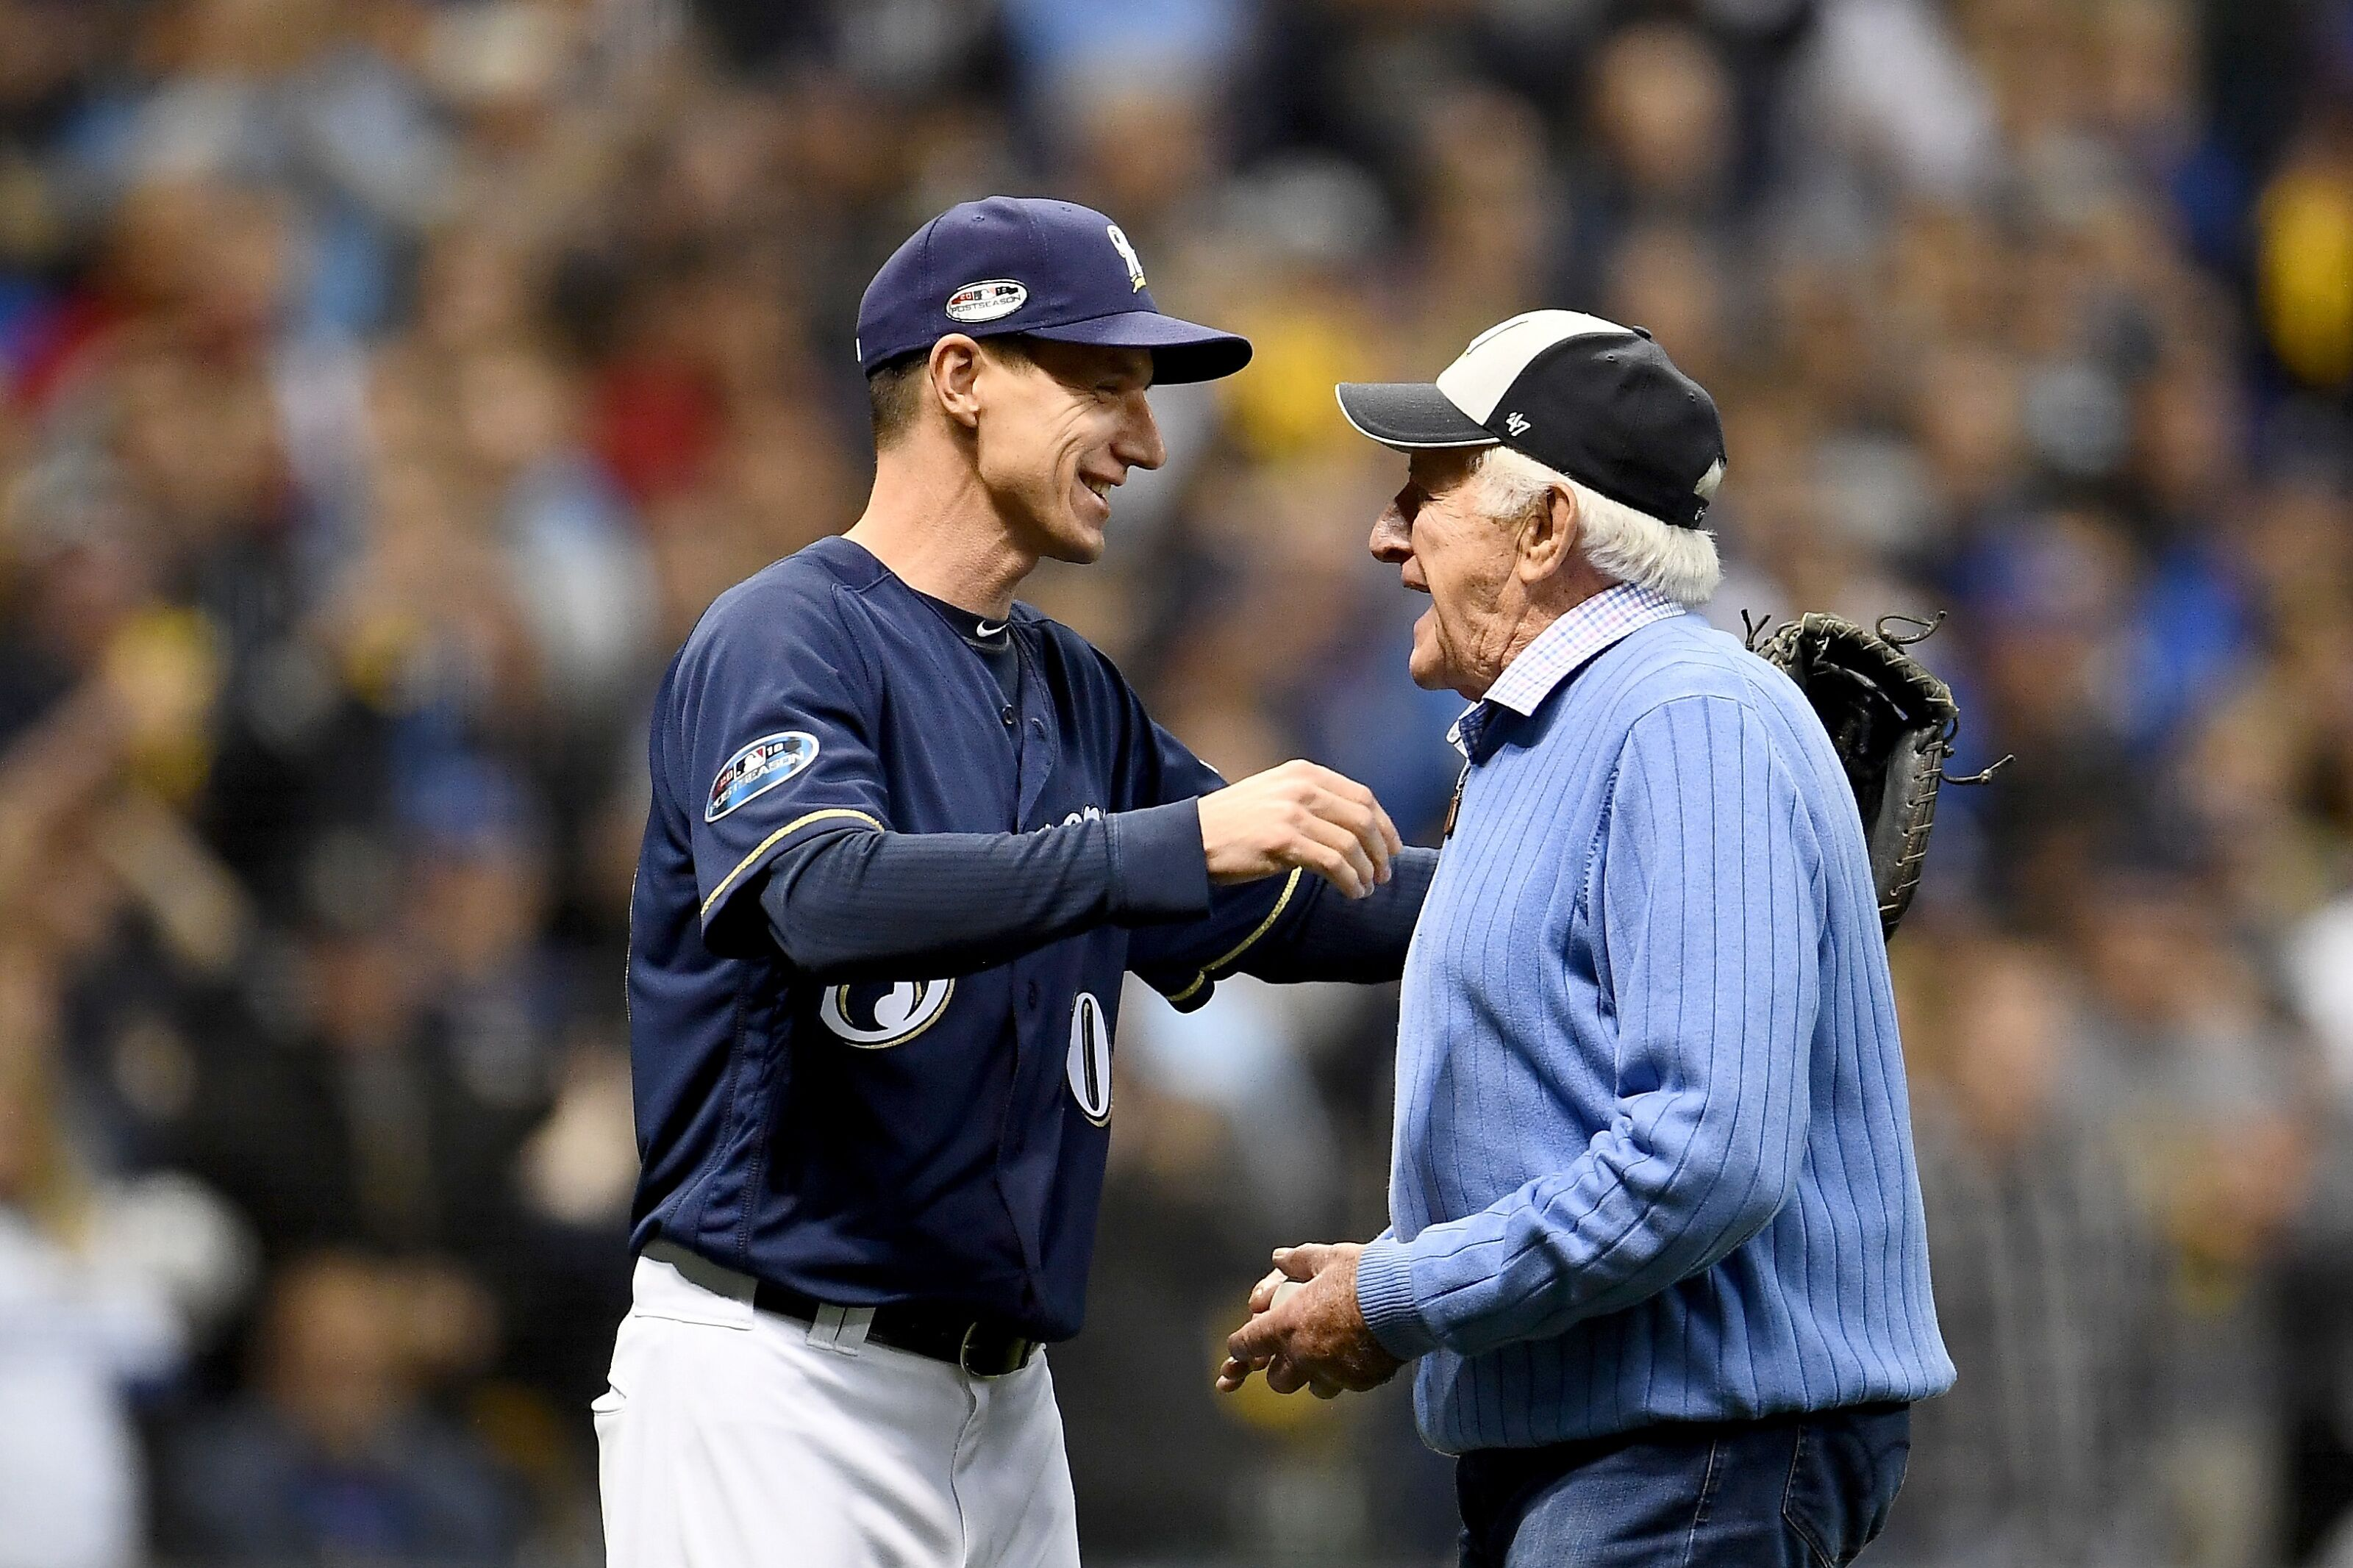 Milwaukee Brewers: Bob Uecker receives and then donates playoff share